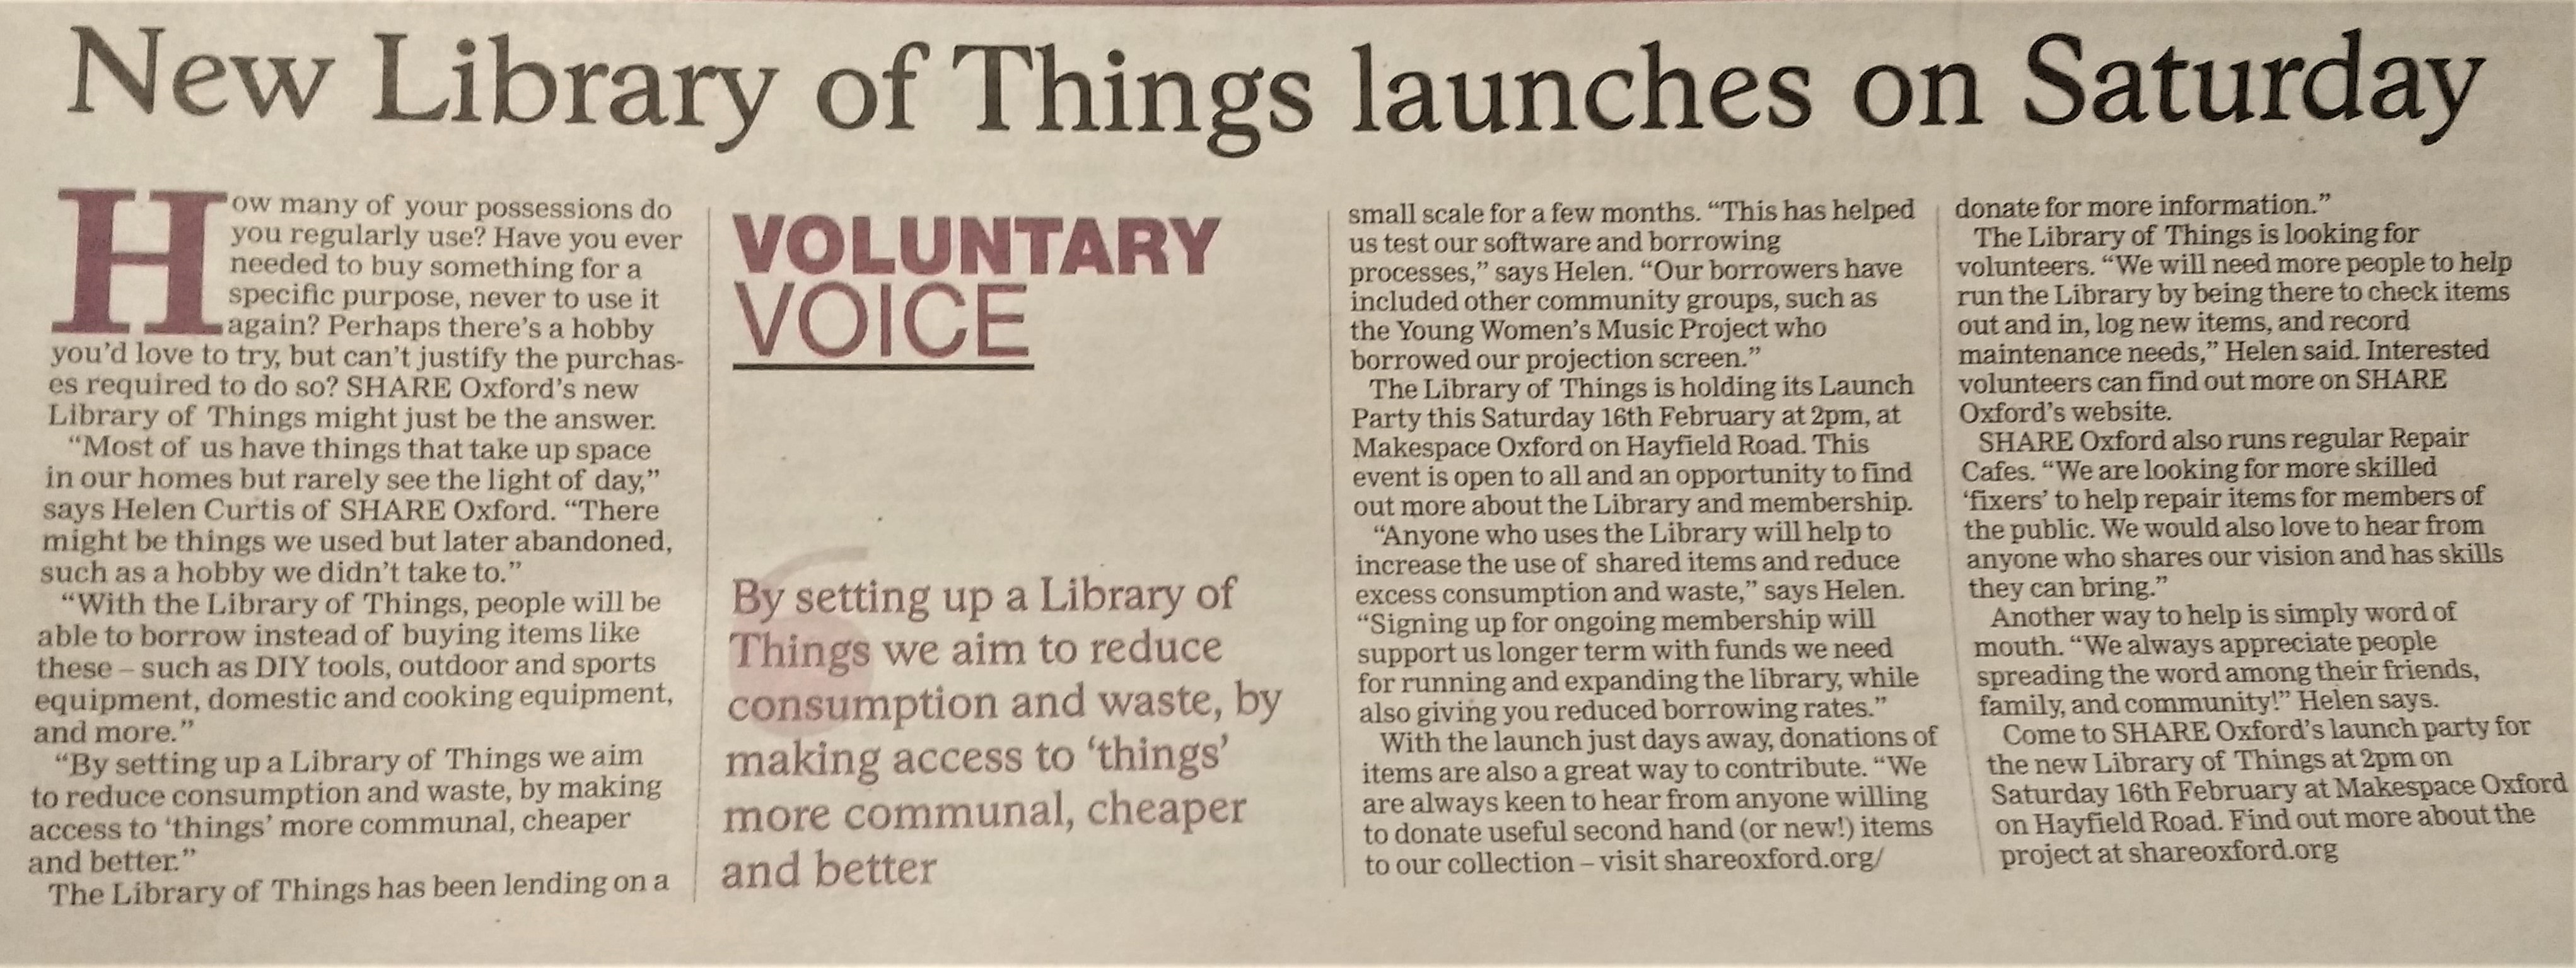 New Library of Things launches on Saturday